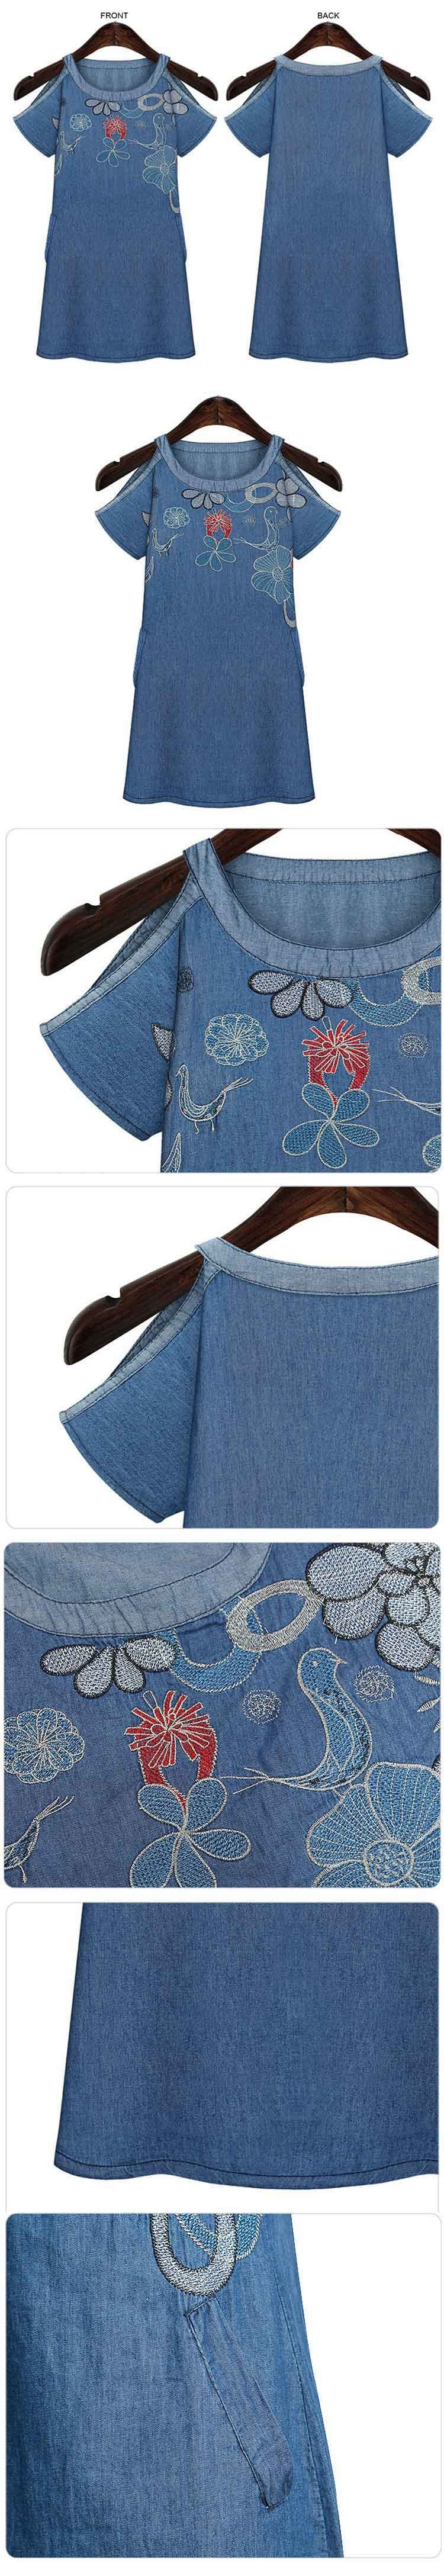 Owlprincess Floral Embroidery Front Denim Jean Dresses Summer (3)